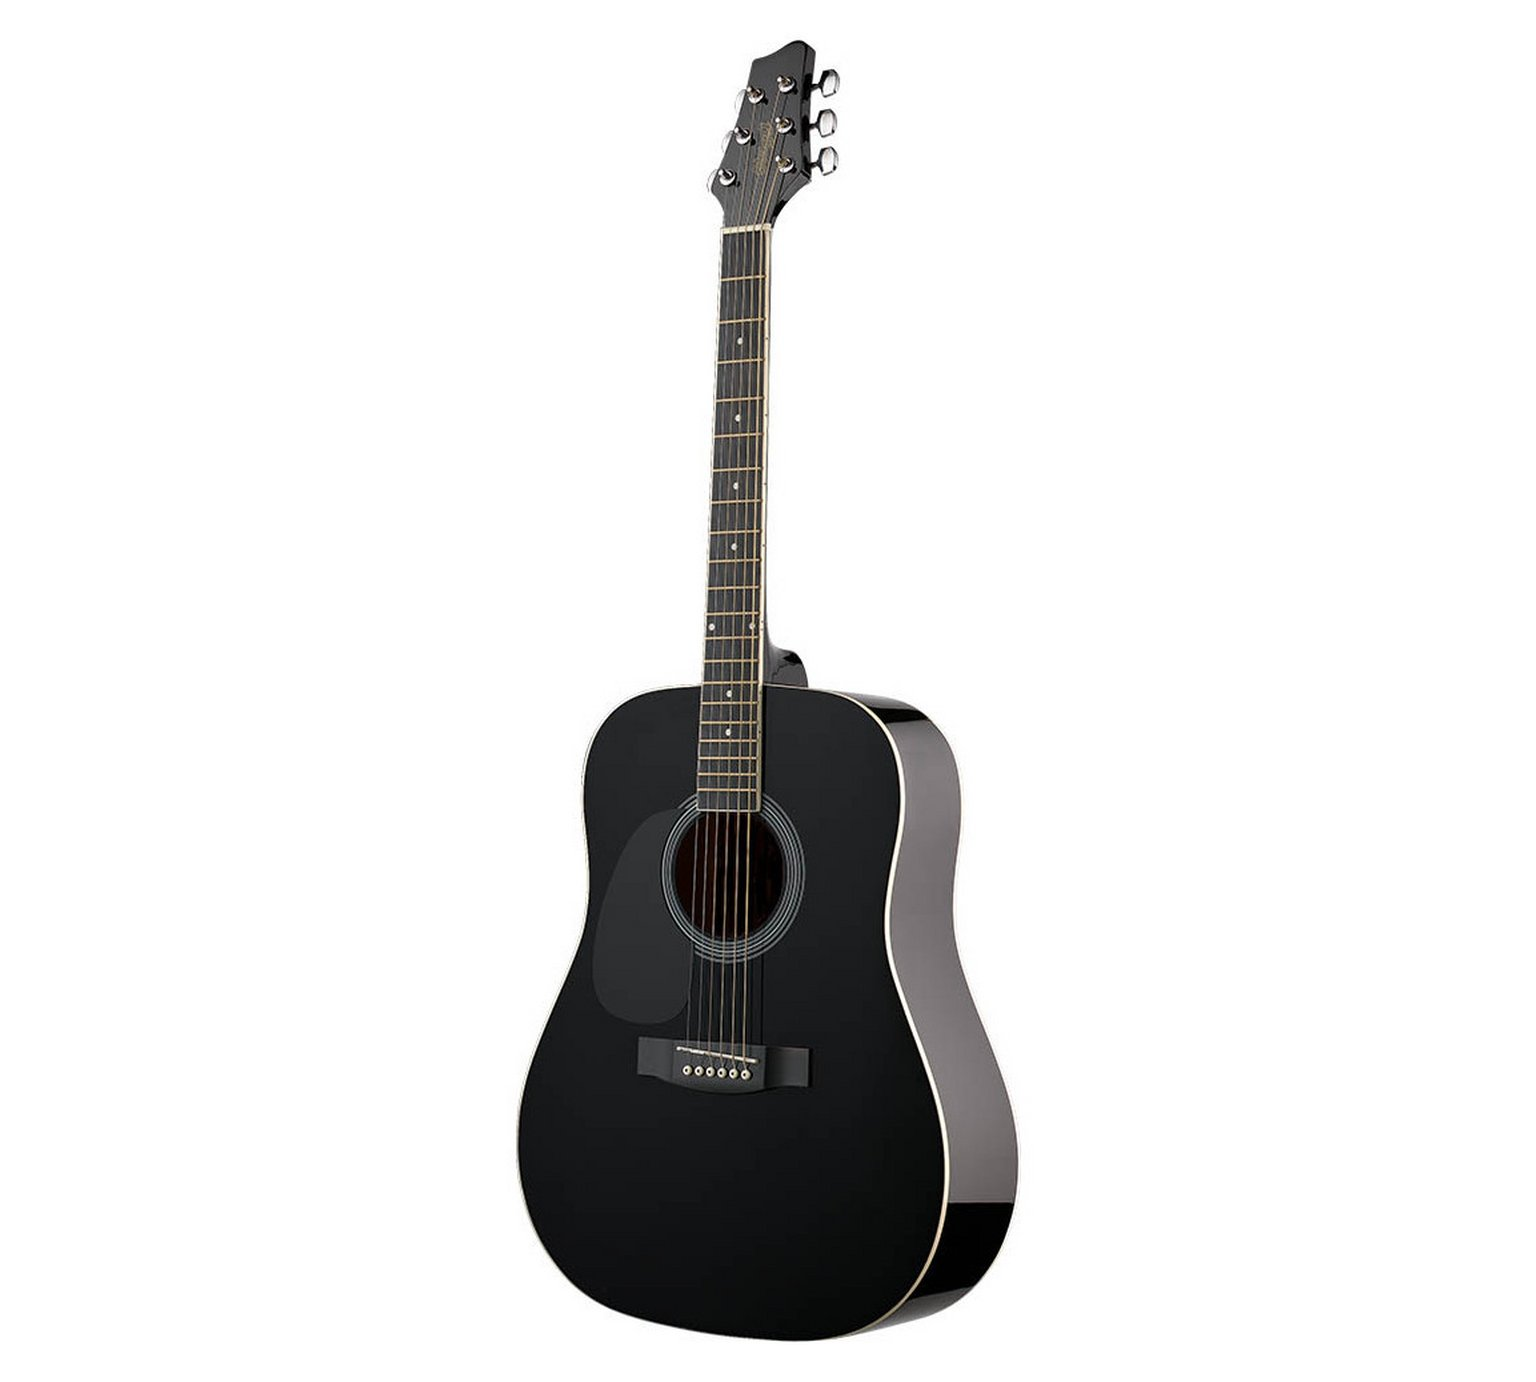 Stagg Lefthanded Acoustic Guitar - Black